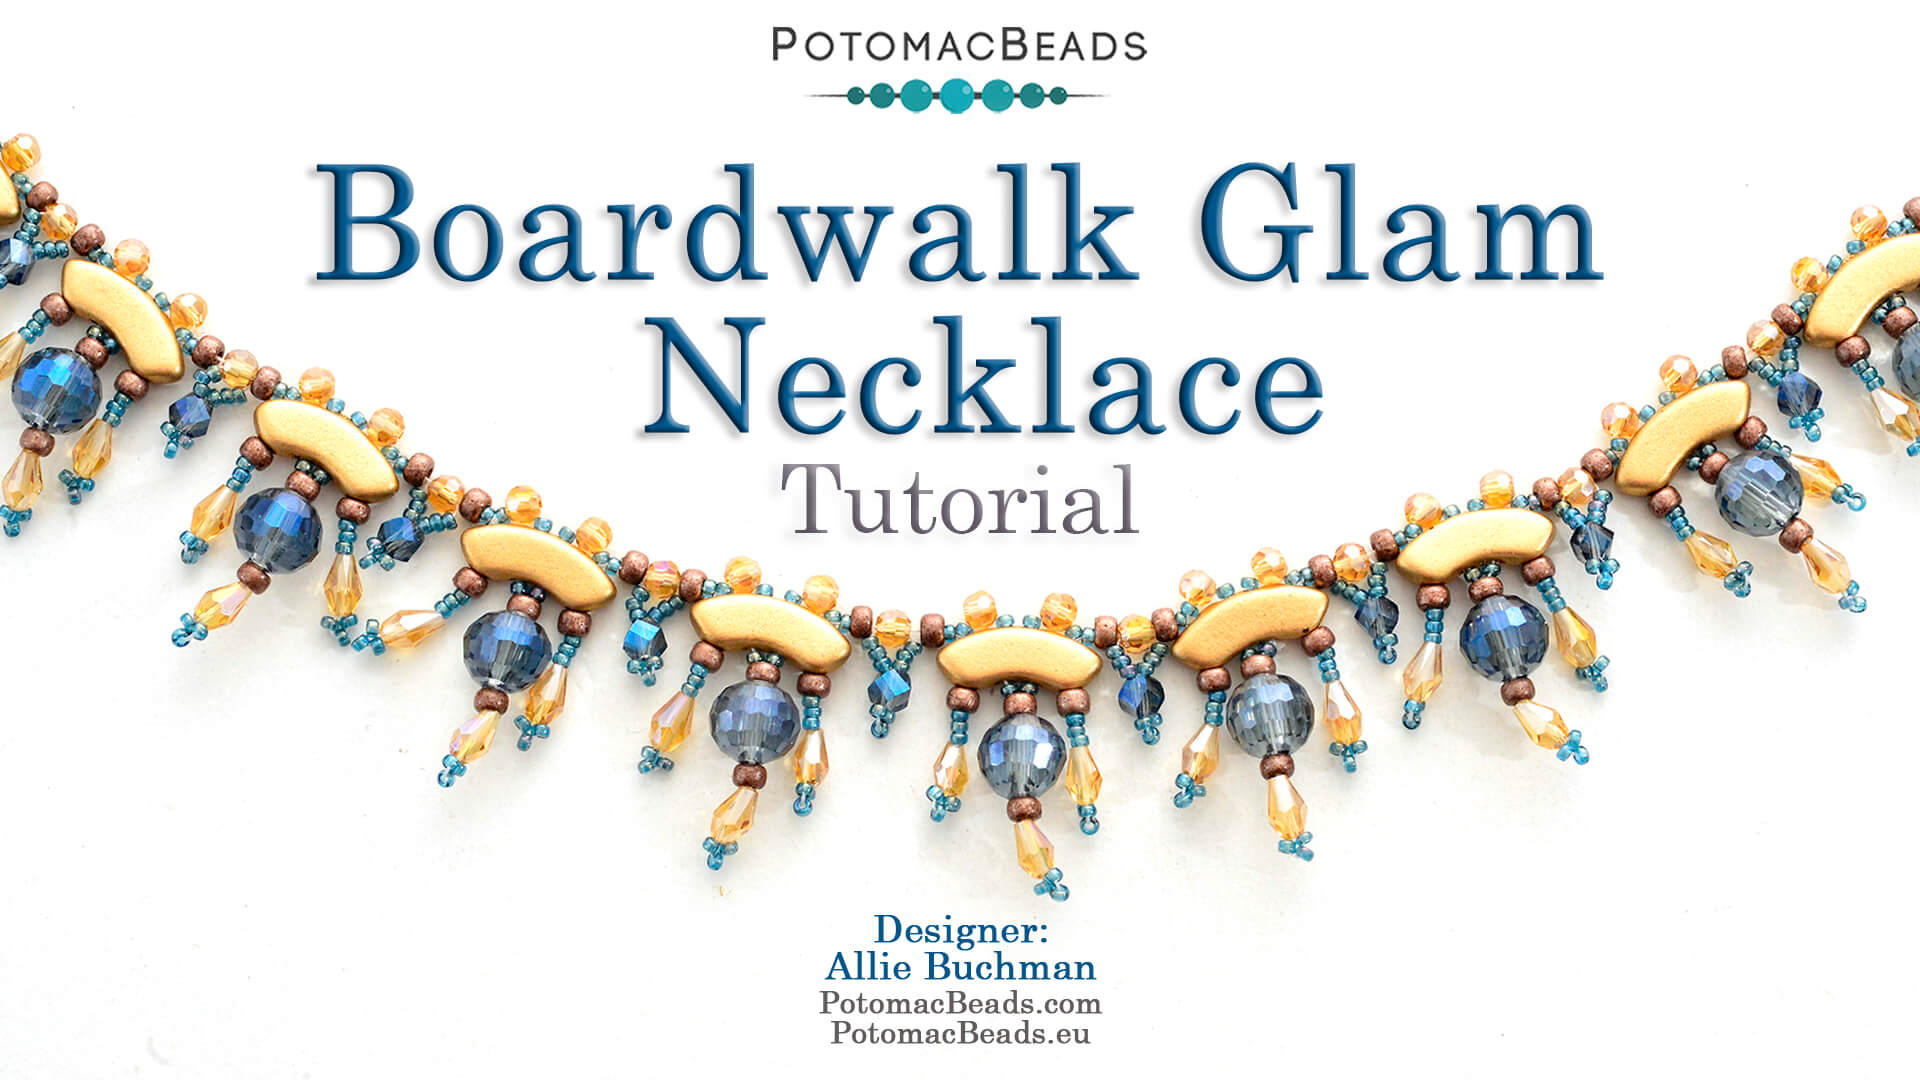 How to Bead / Videos Sorted by Beads / Potomac Crystal Videos / Boardwalk Glam Necklace Tutorial